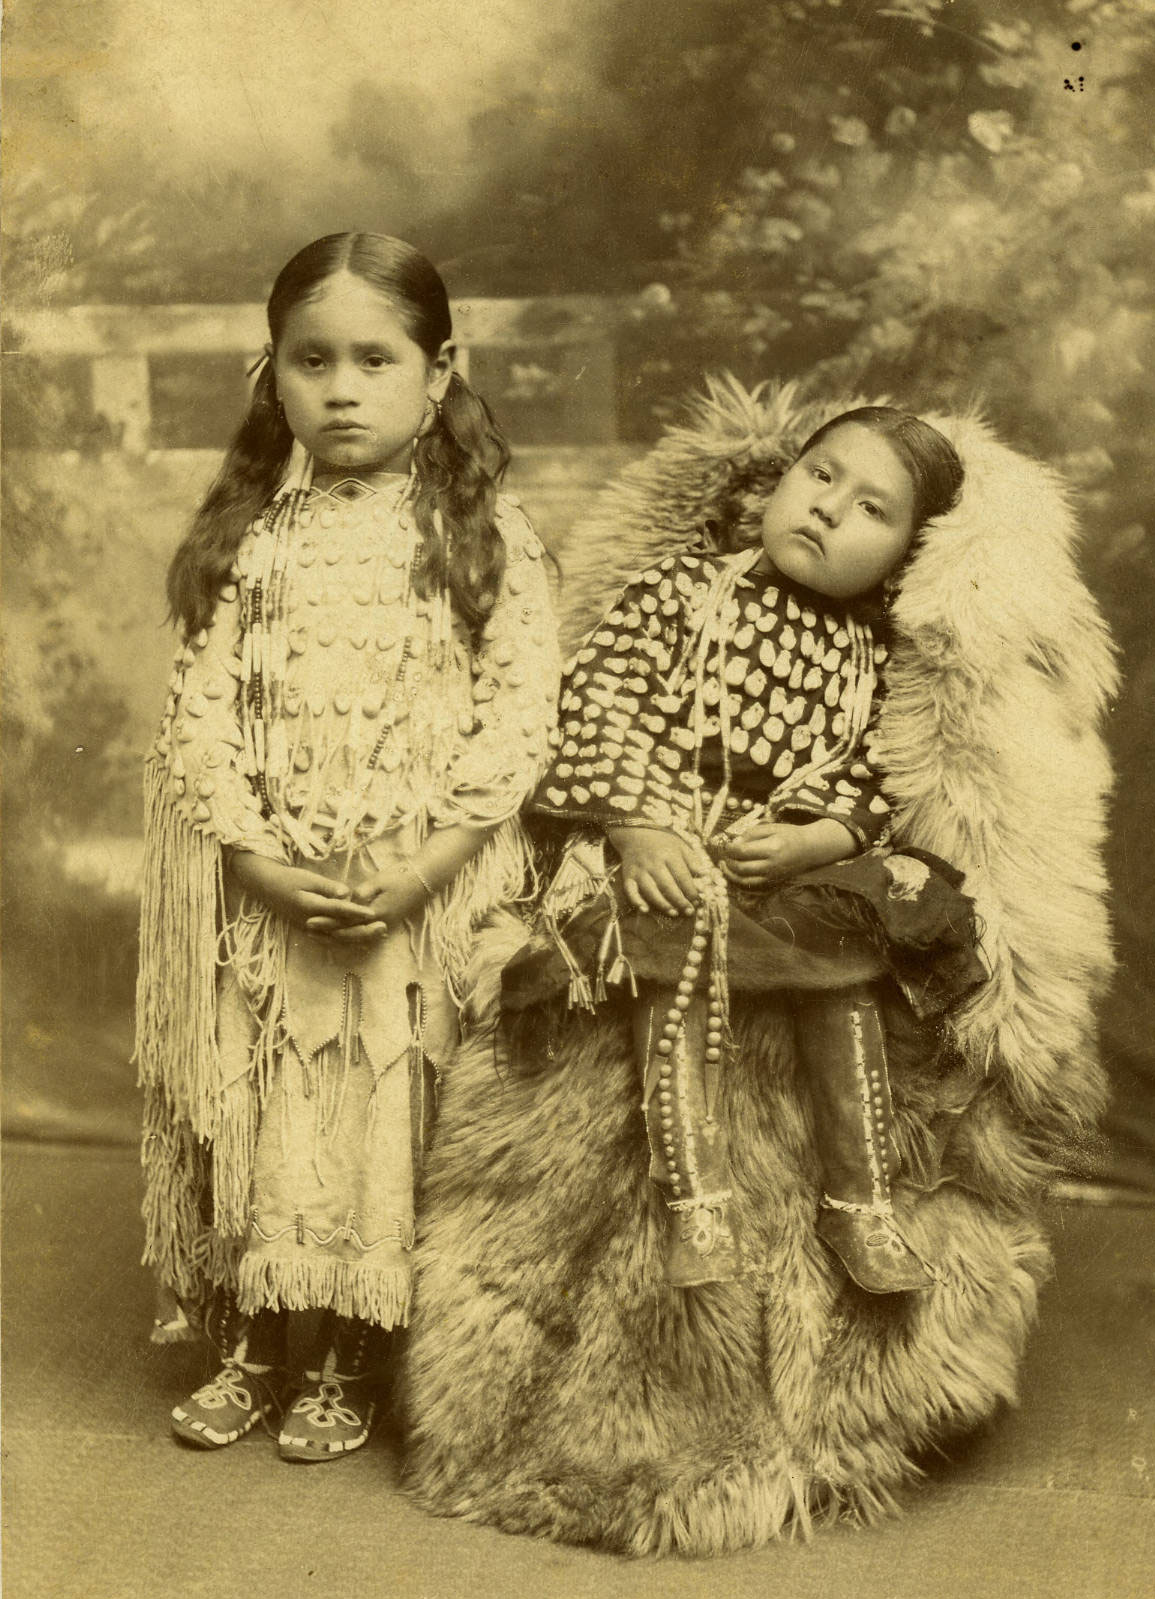 Cabinet card photograph of two Kiowa girls, leather dresses adorned with elk's teeth, Chickasha, Oklahoma, Indian Territory, circa 1892-1906